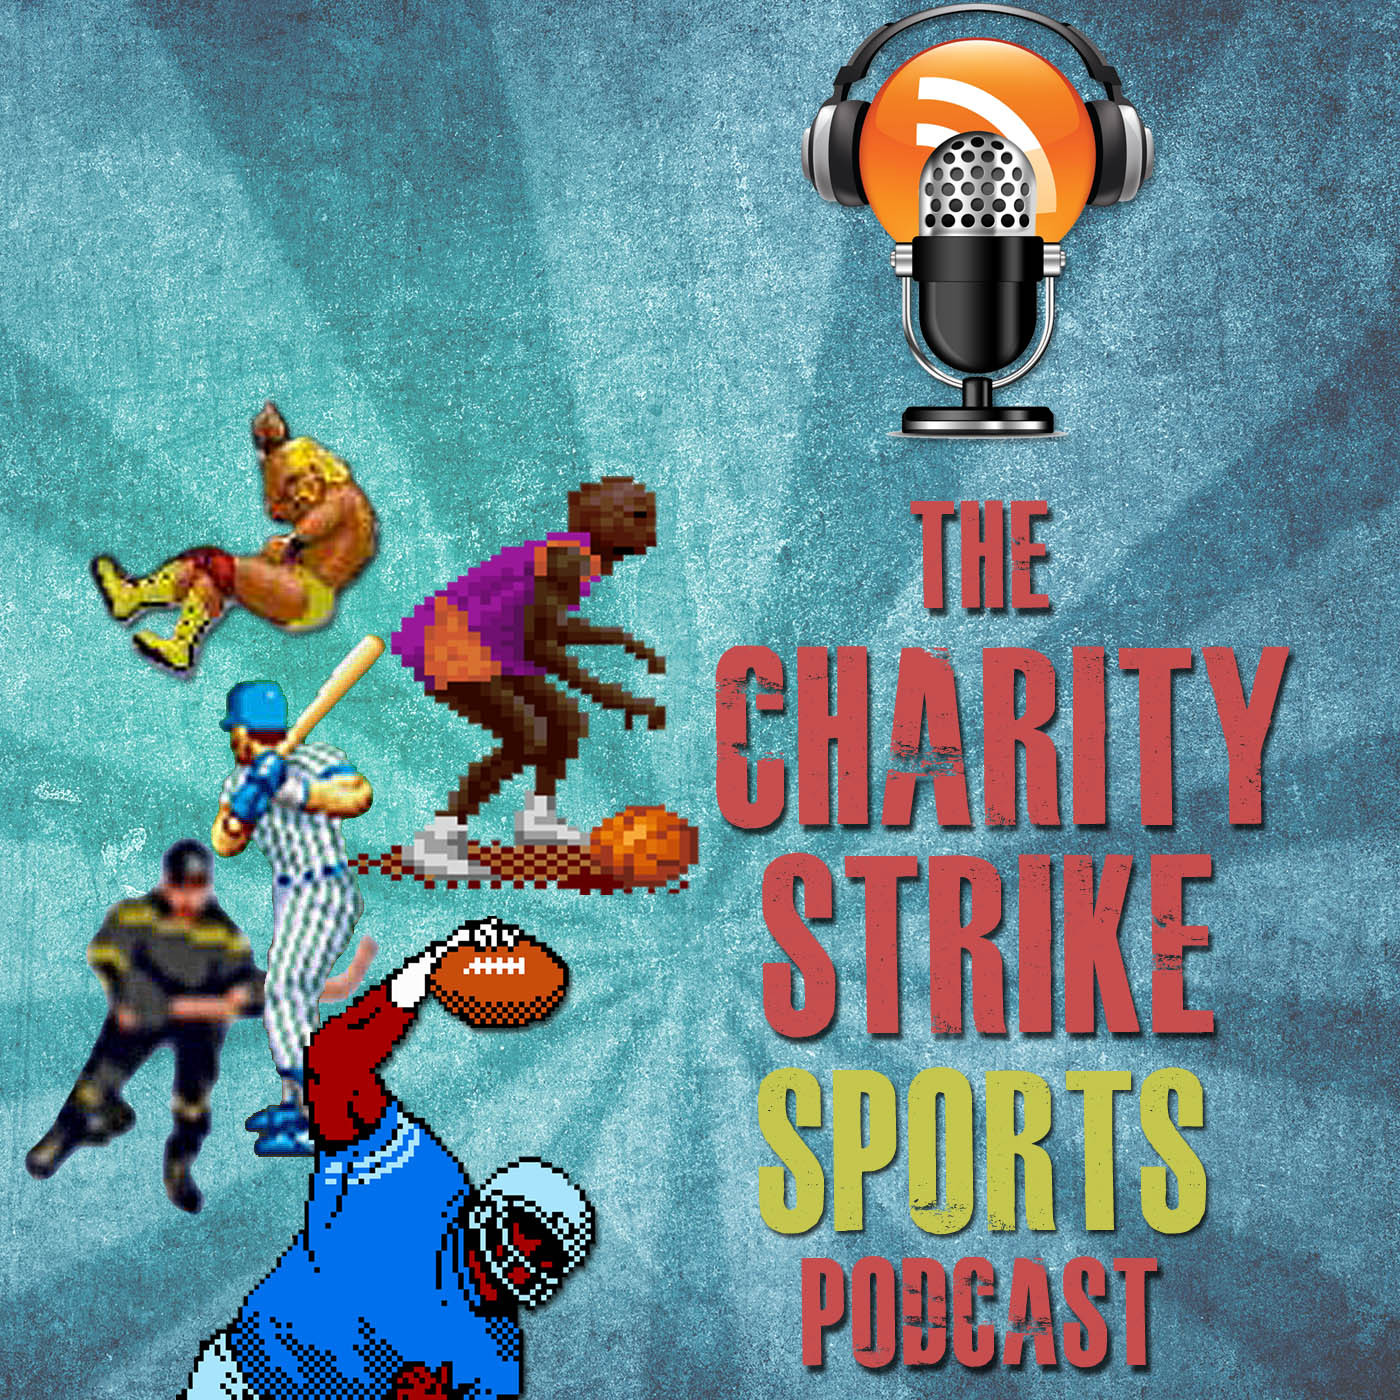 The Charity Strike Sports Podcast